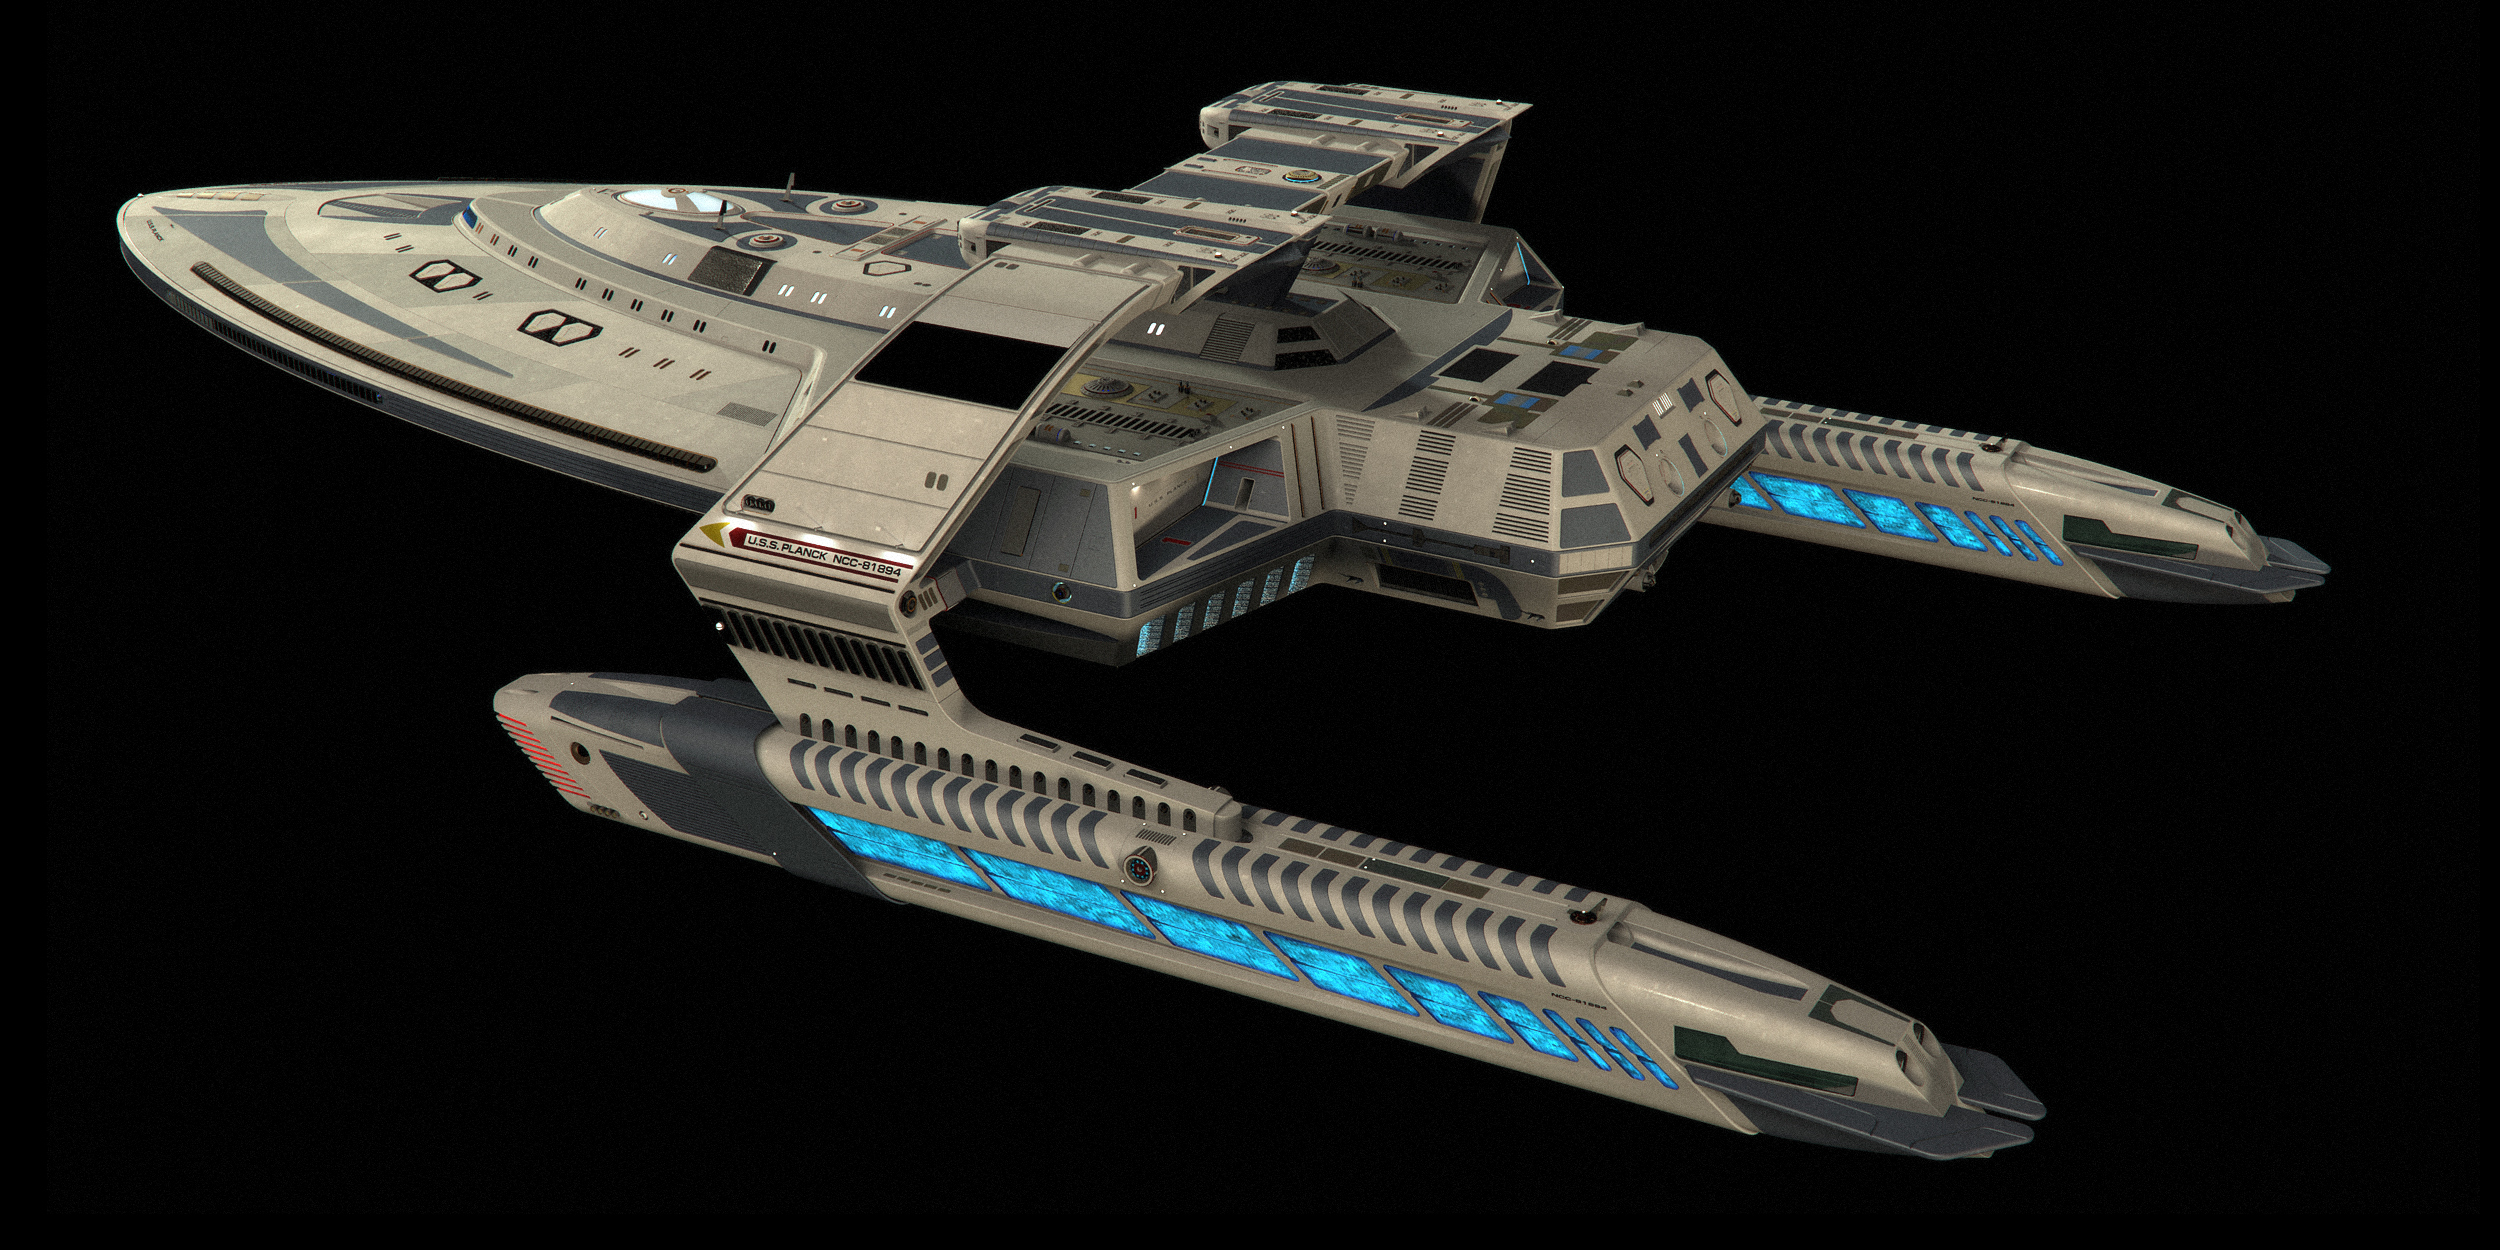 star trek future starship - photo #4